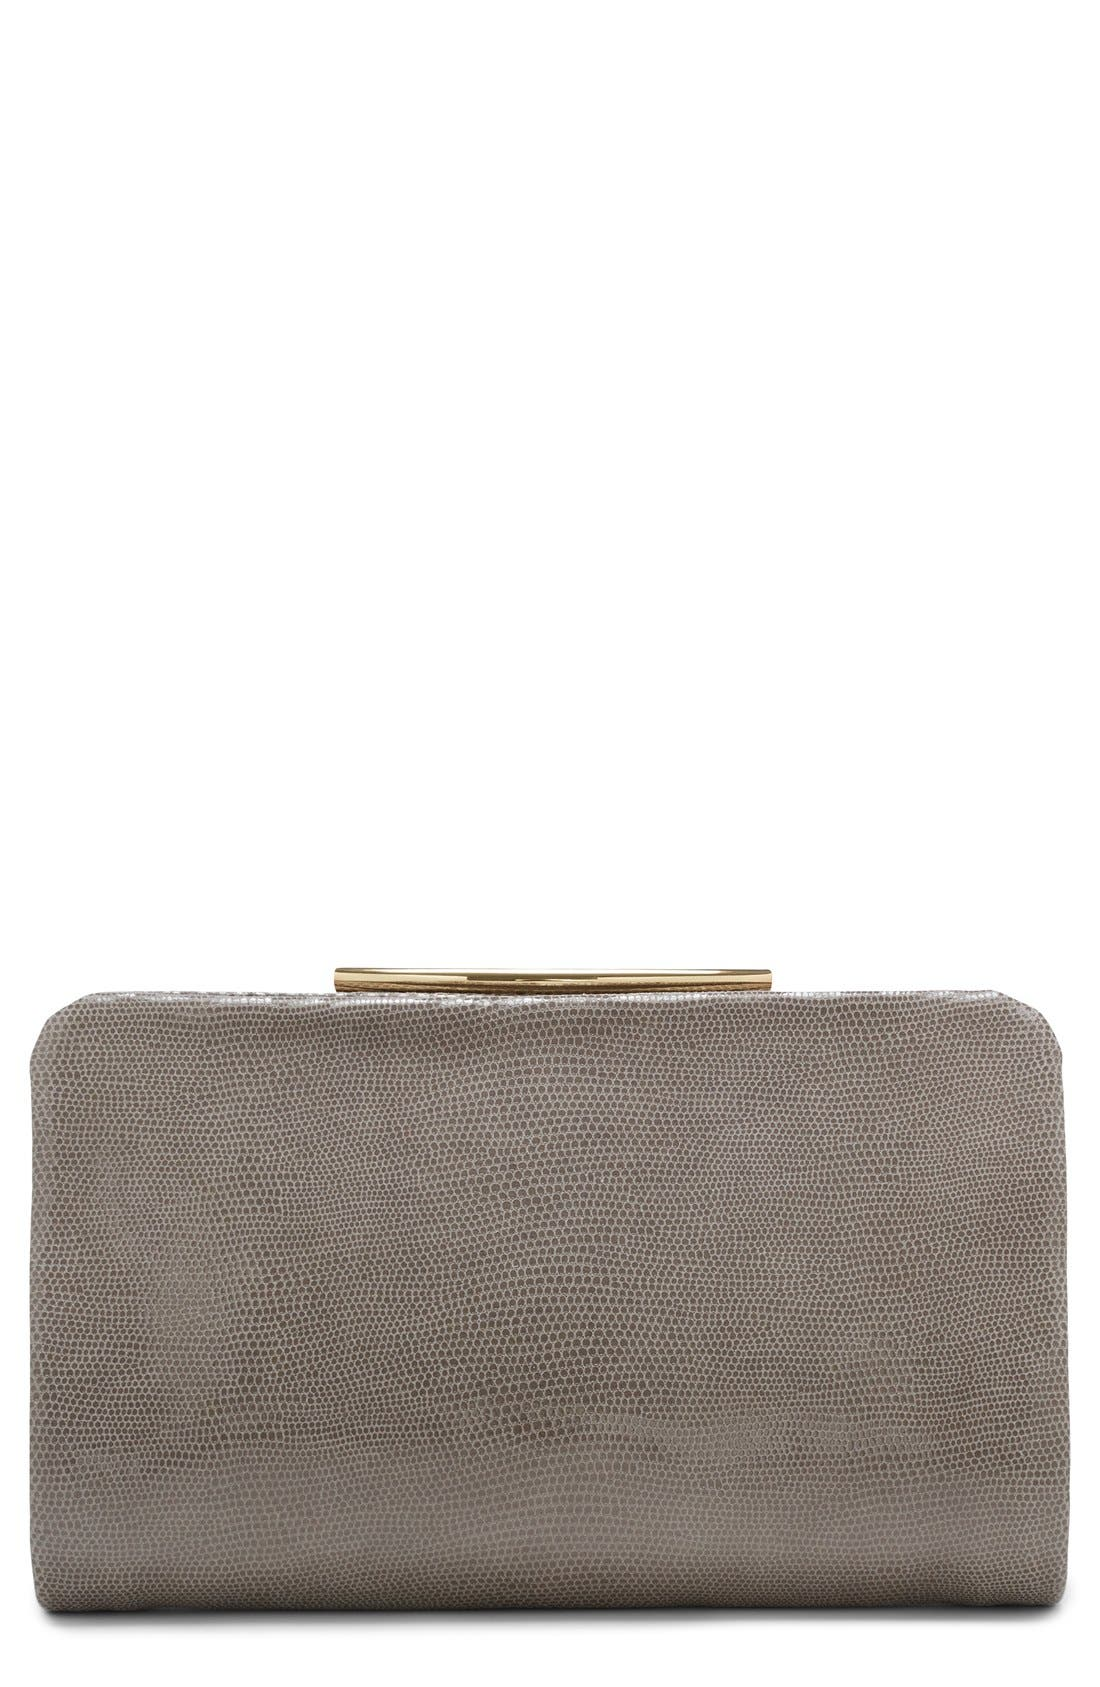 Alternate Image 1 Selected - Vince Camuto 'Ella' Leather Clutch